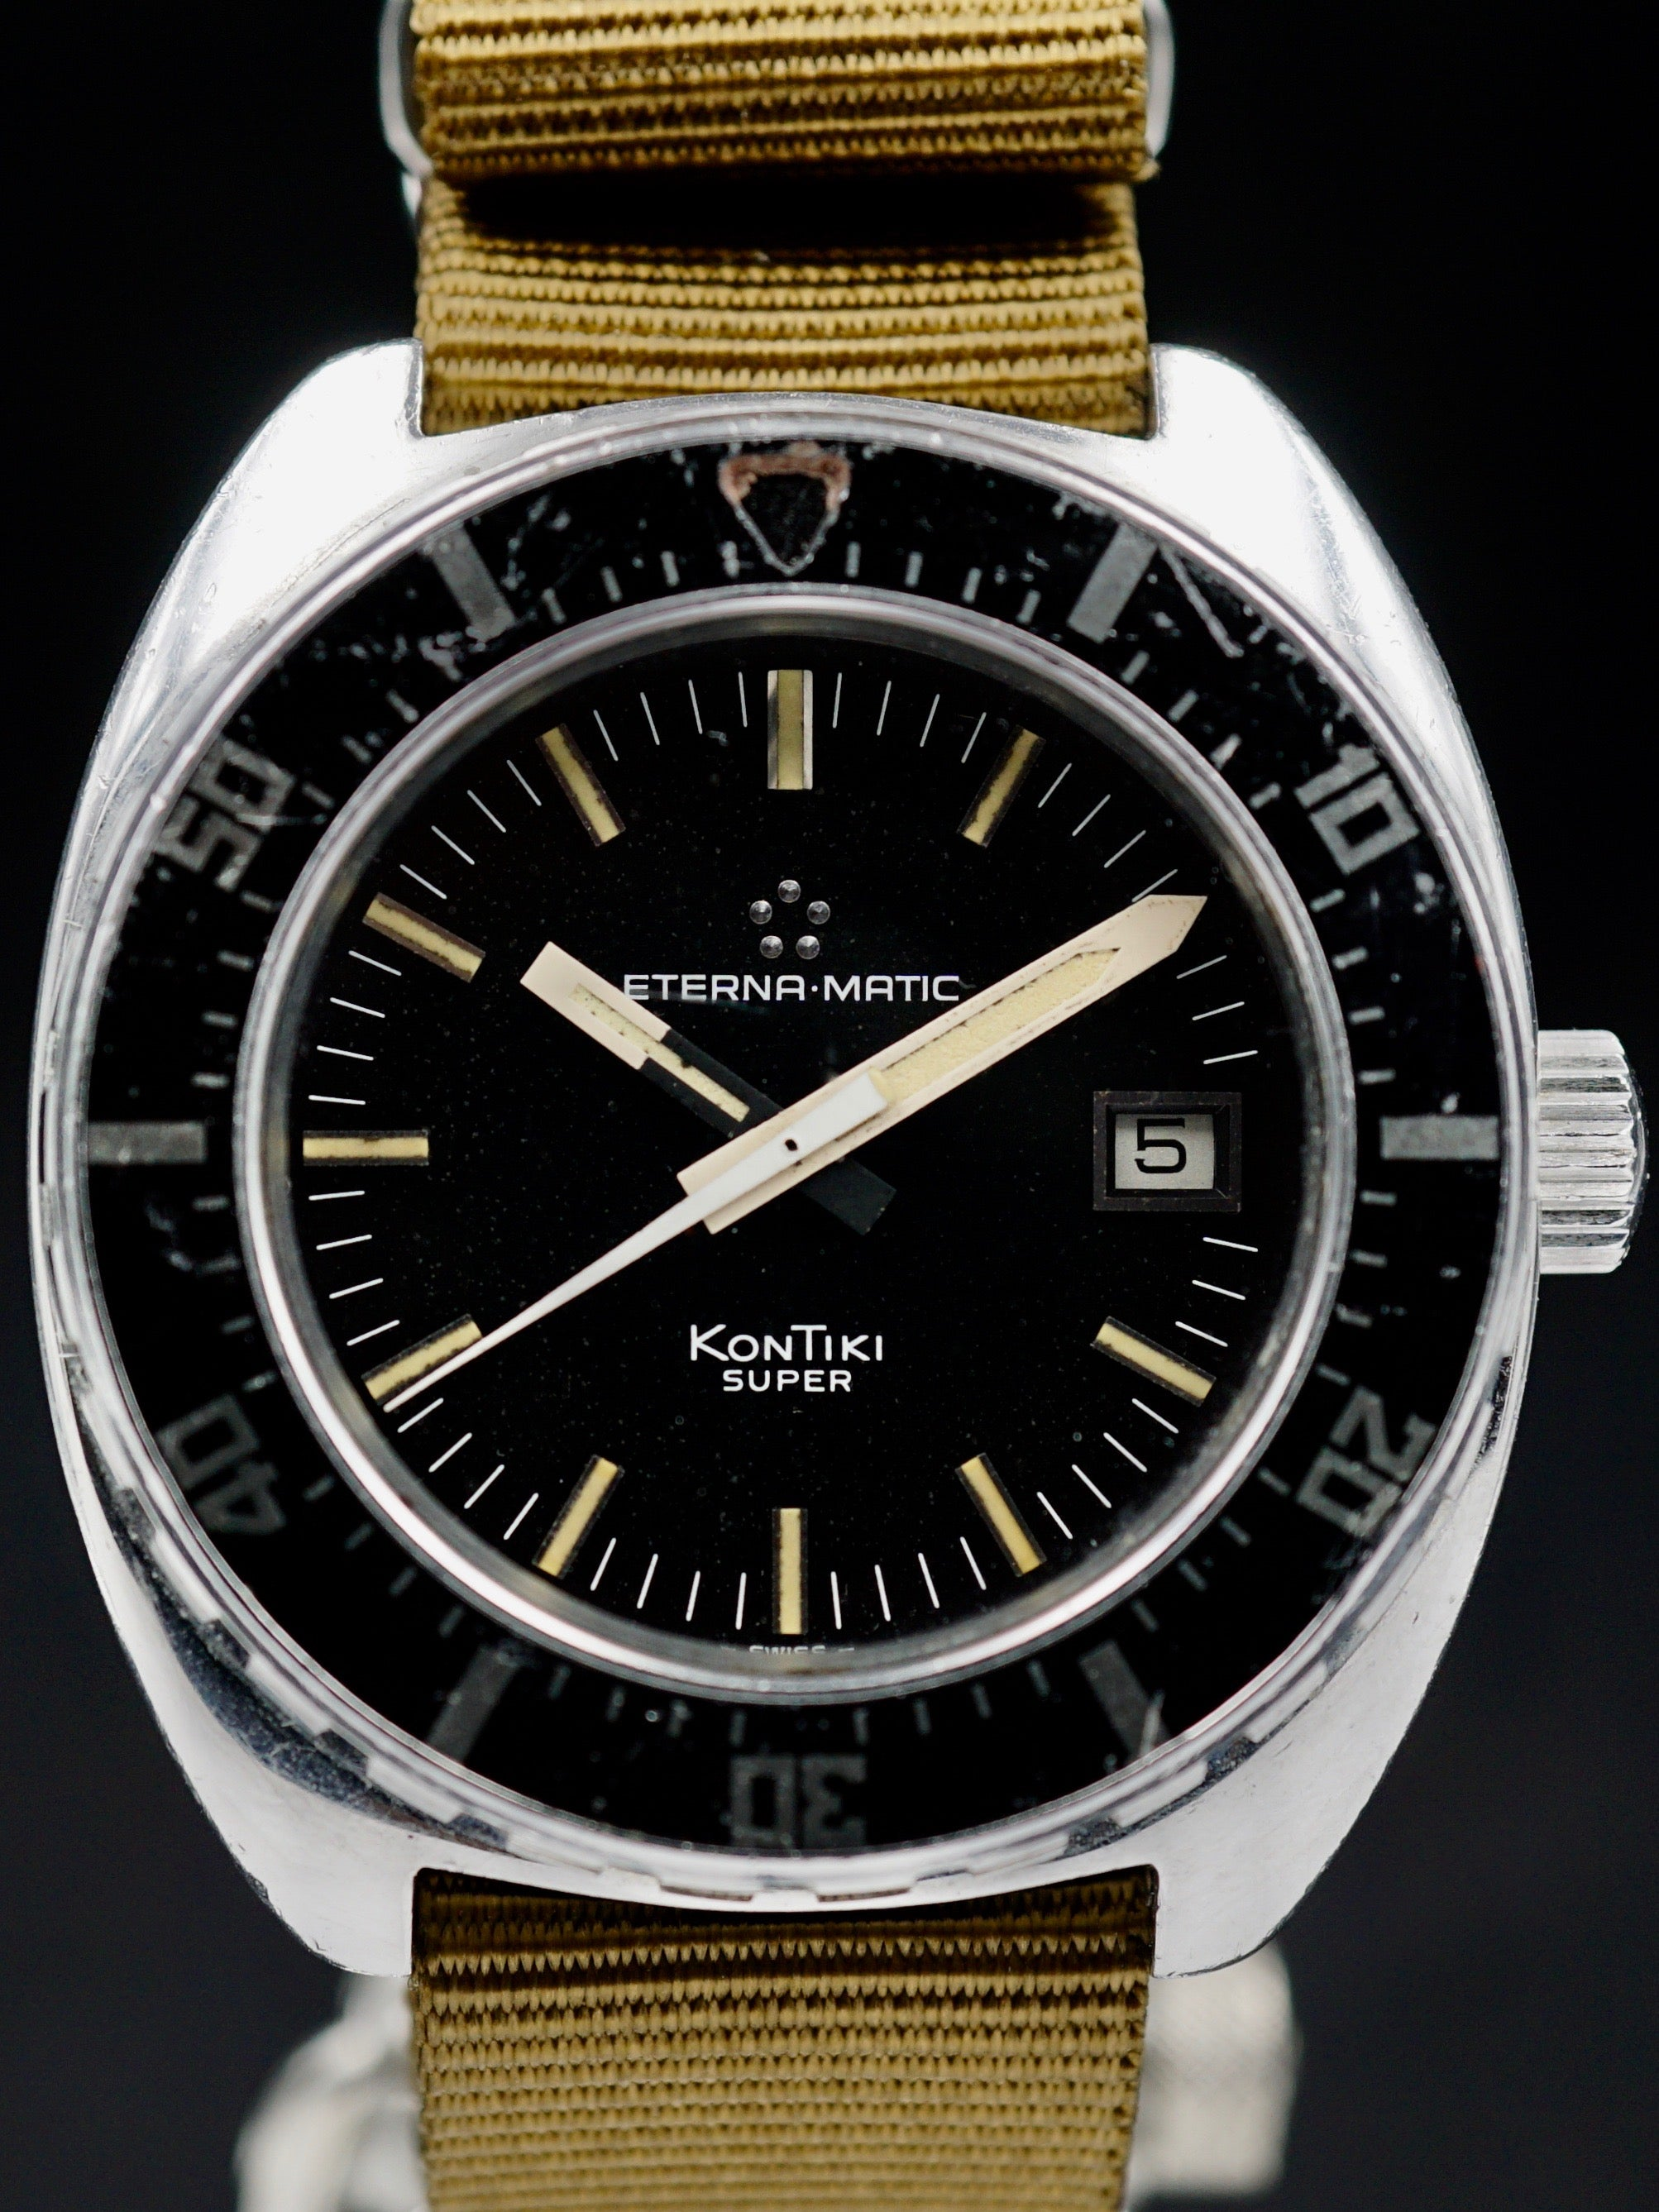 1970's Eterna-Matic KonTiki SUPER ref. 633.1018.41